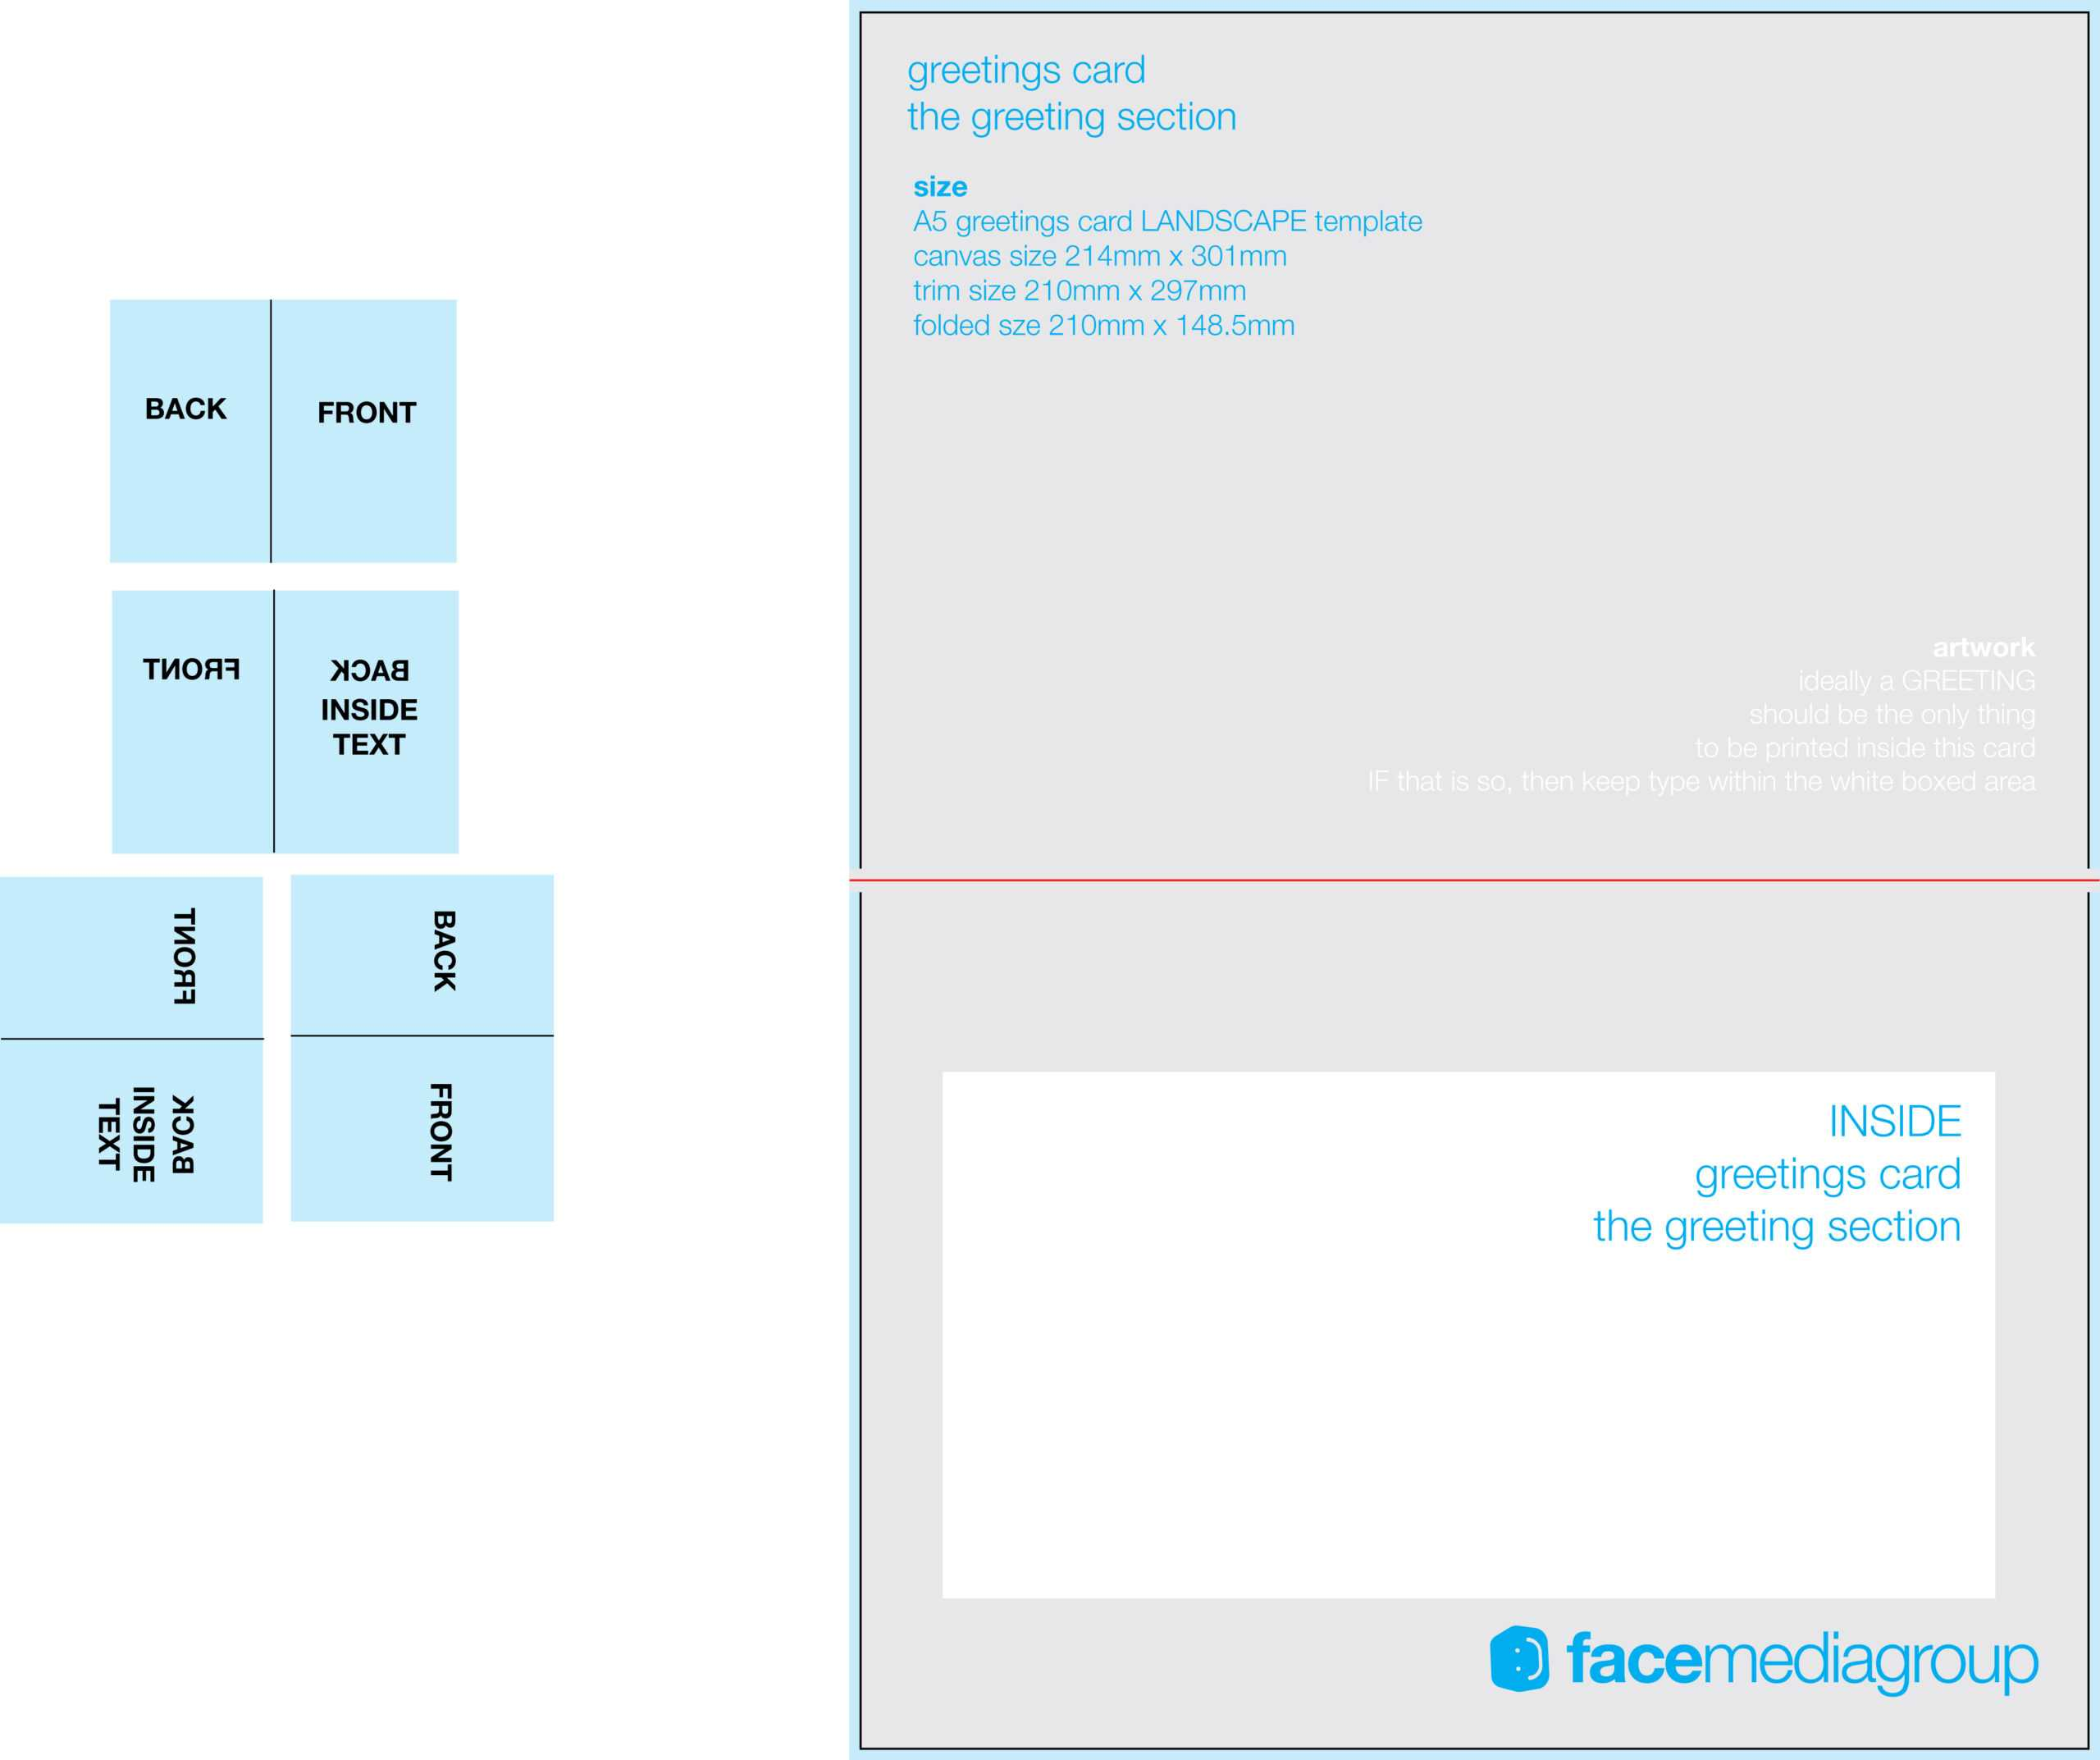 Free Blank Greetings Card Artwork Templates For Download Regarding Greeting Card Layout Templates